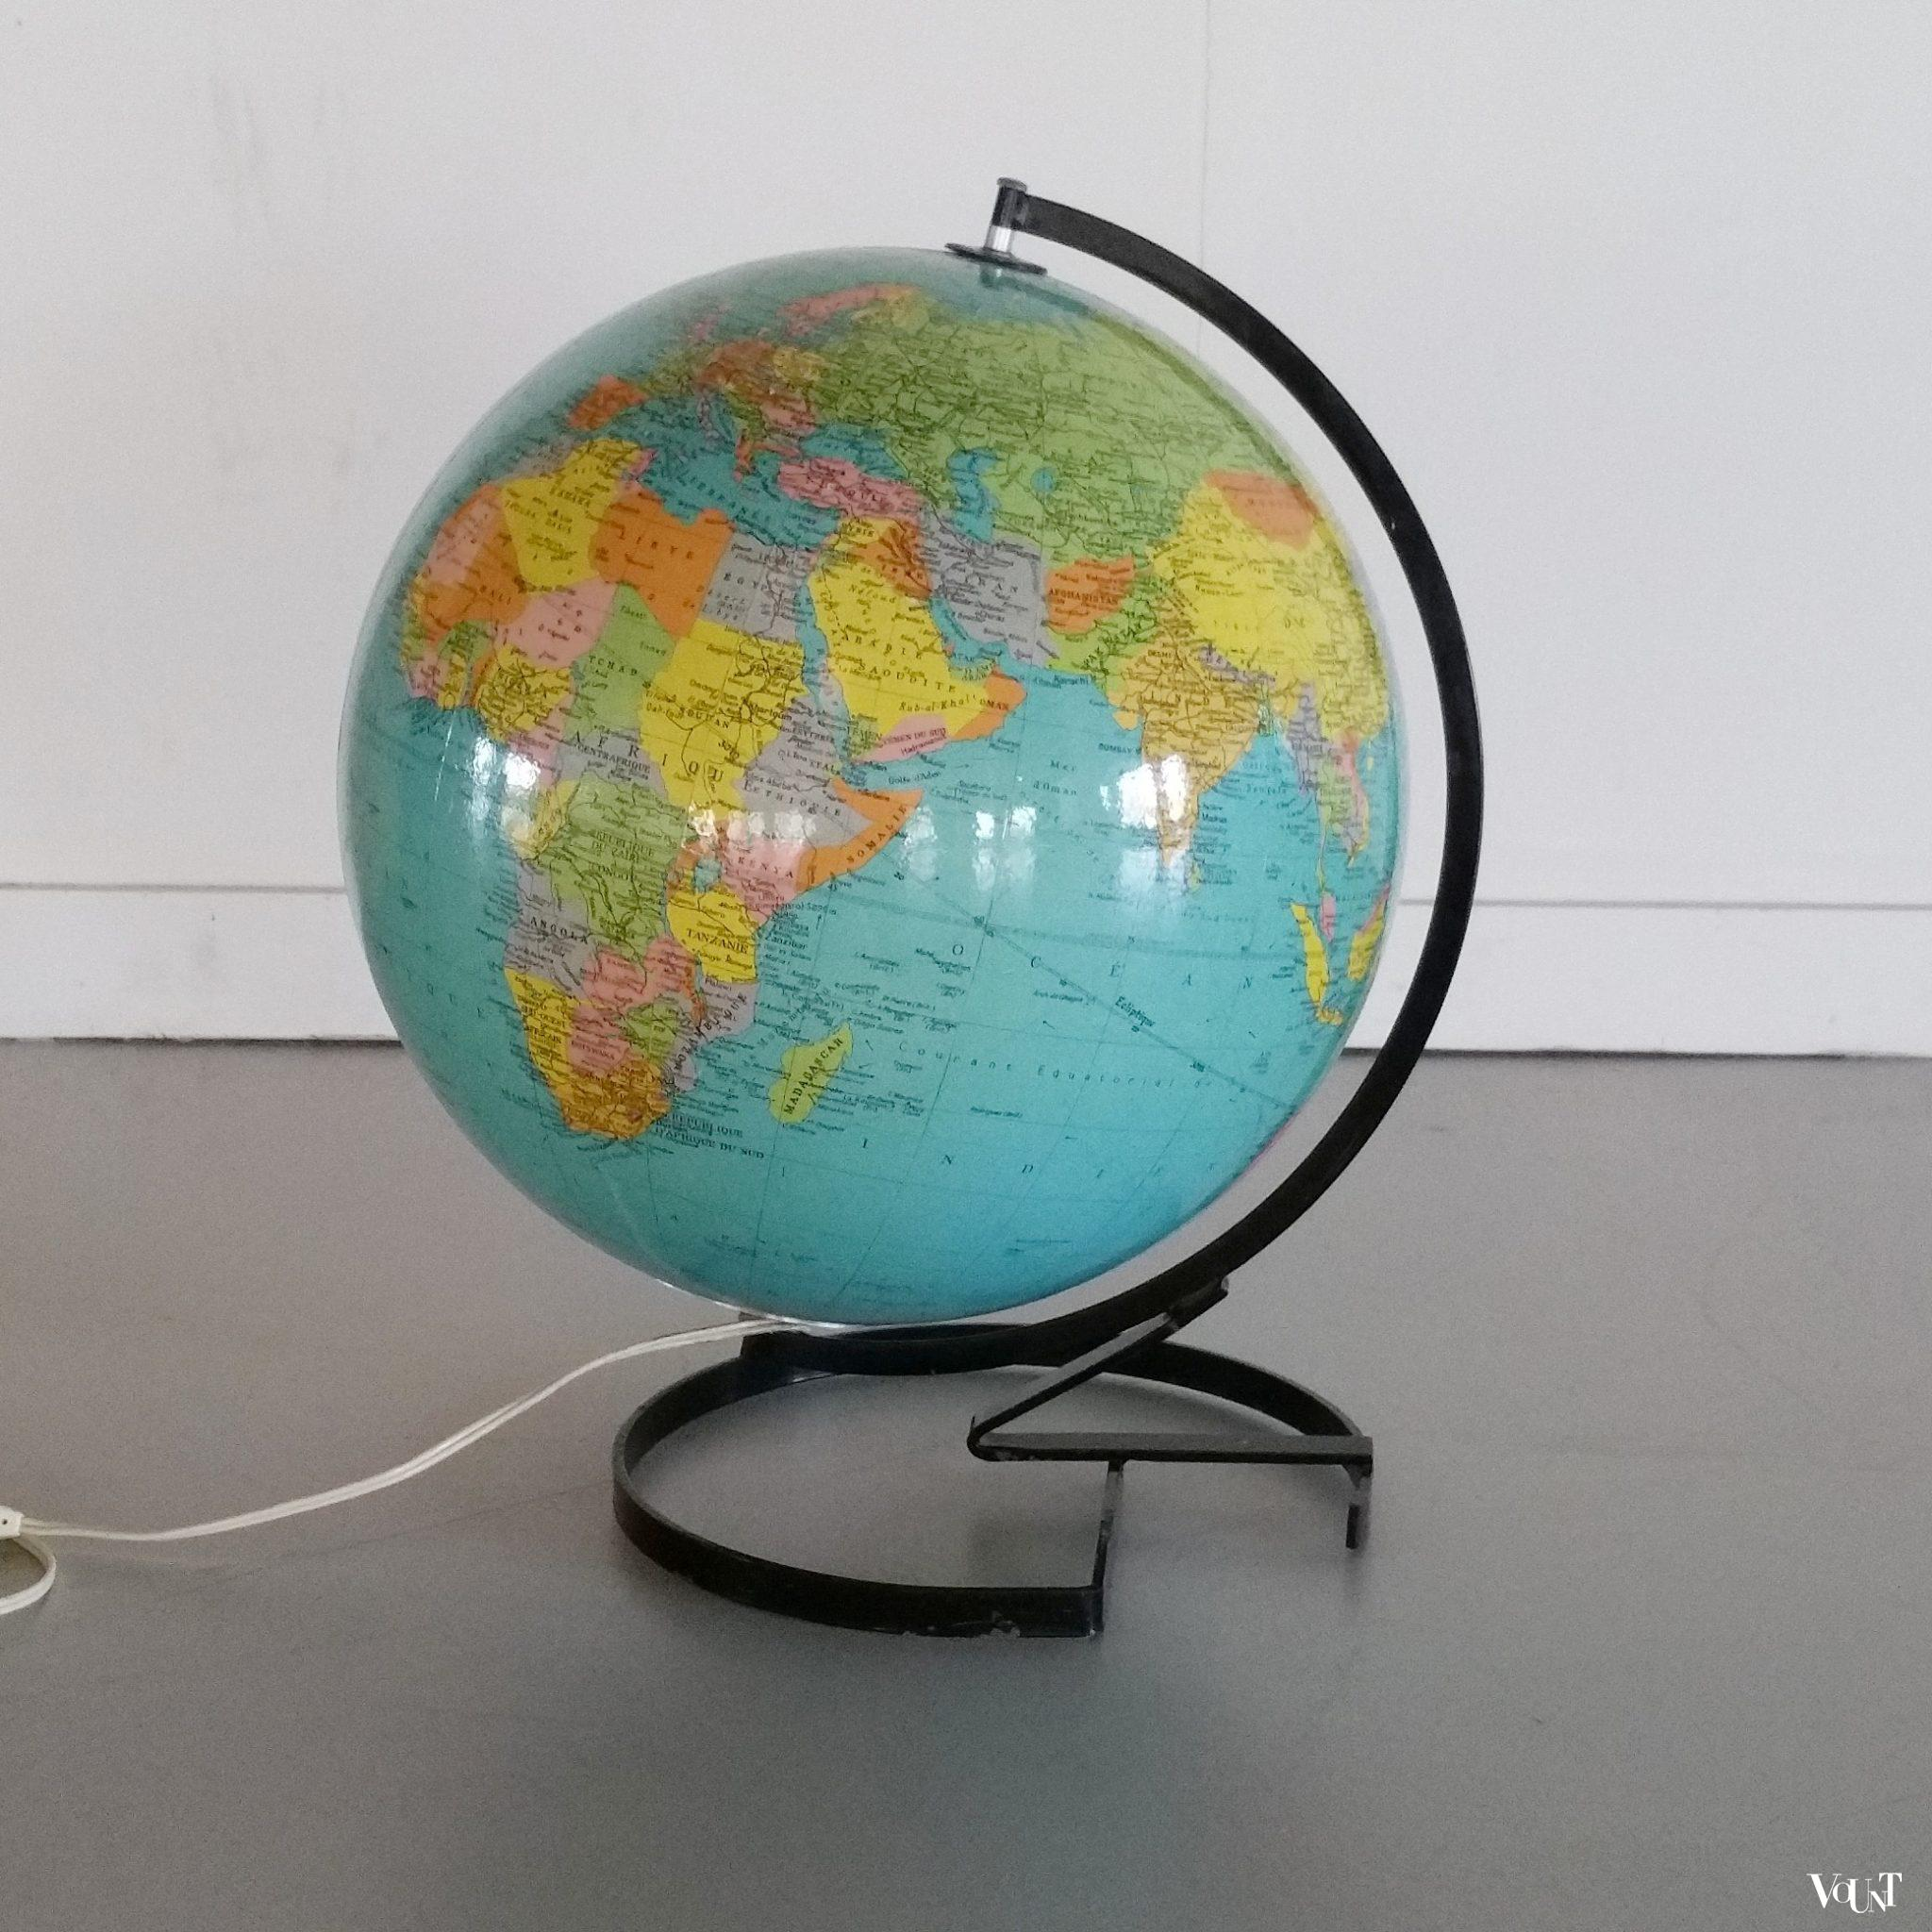 Awesome Globe Met Verlichting Contemporary - Ideeën Voor Thuis ...